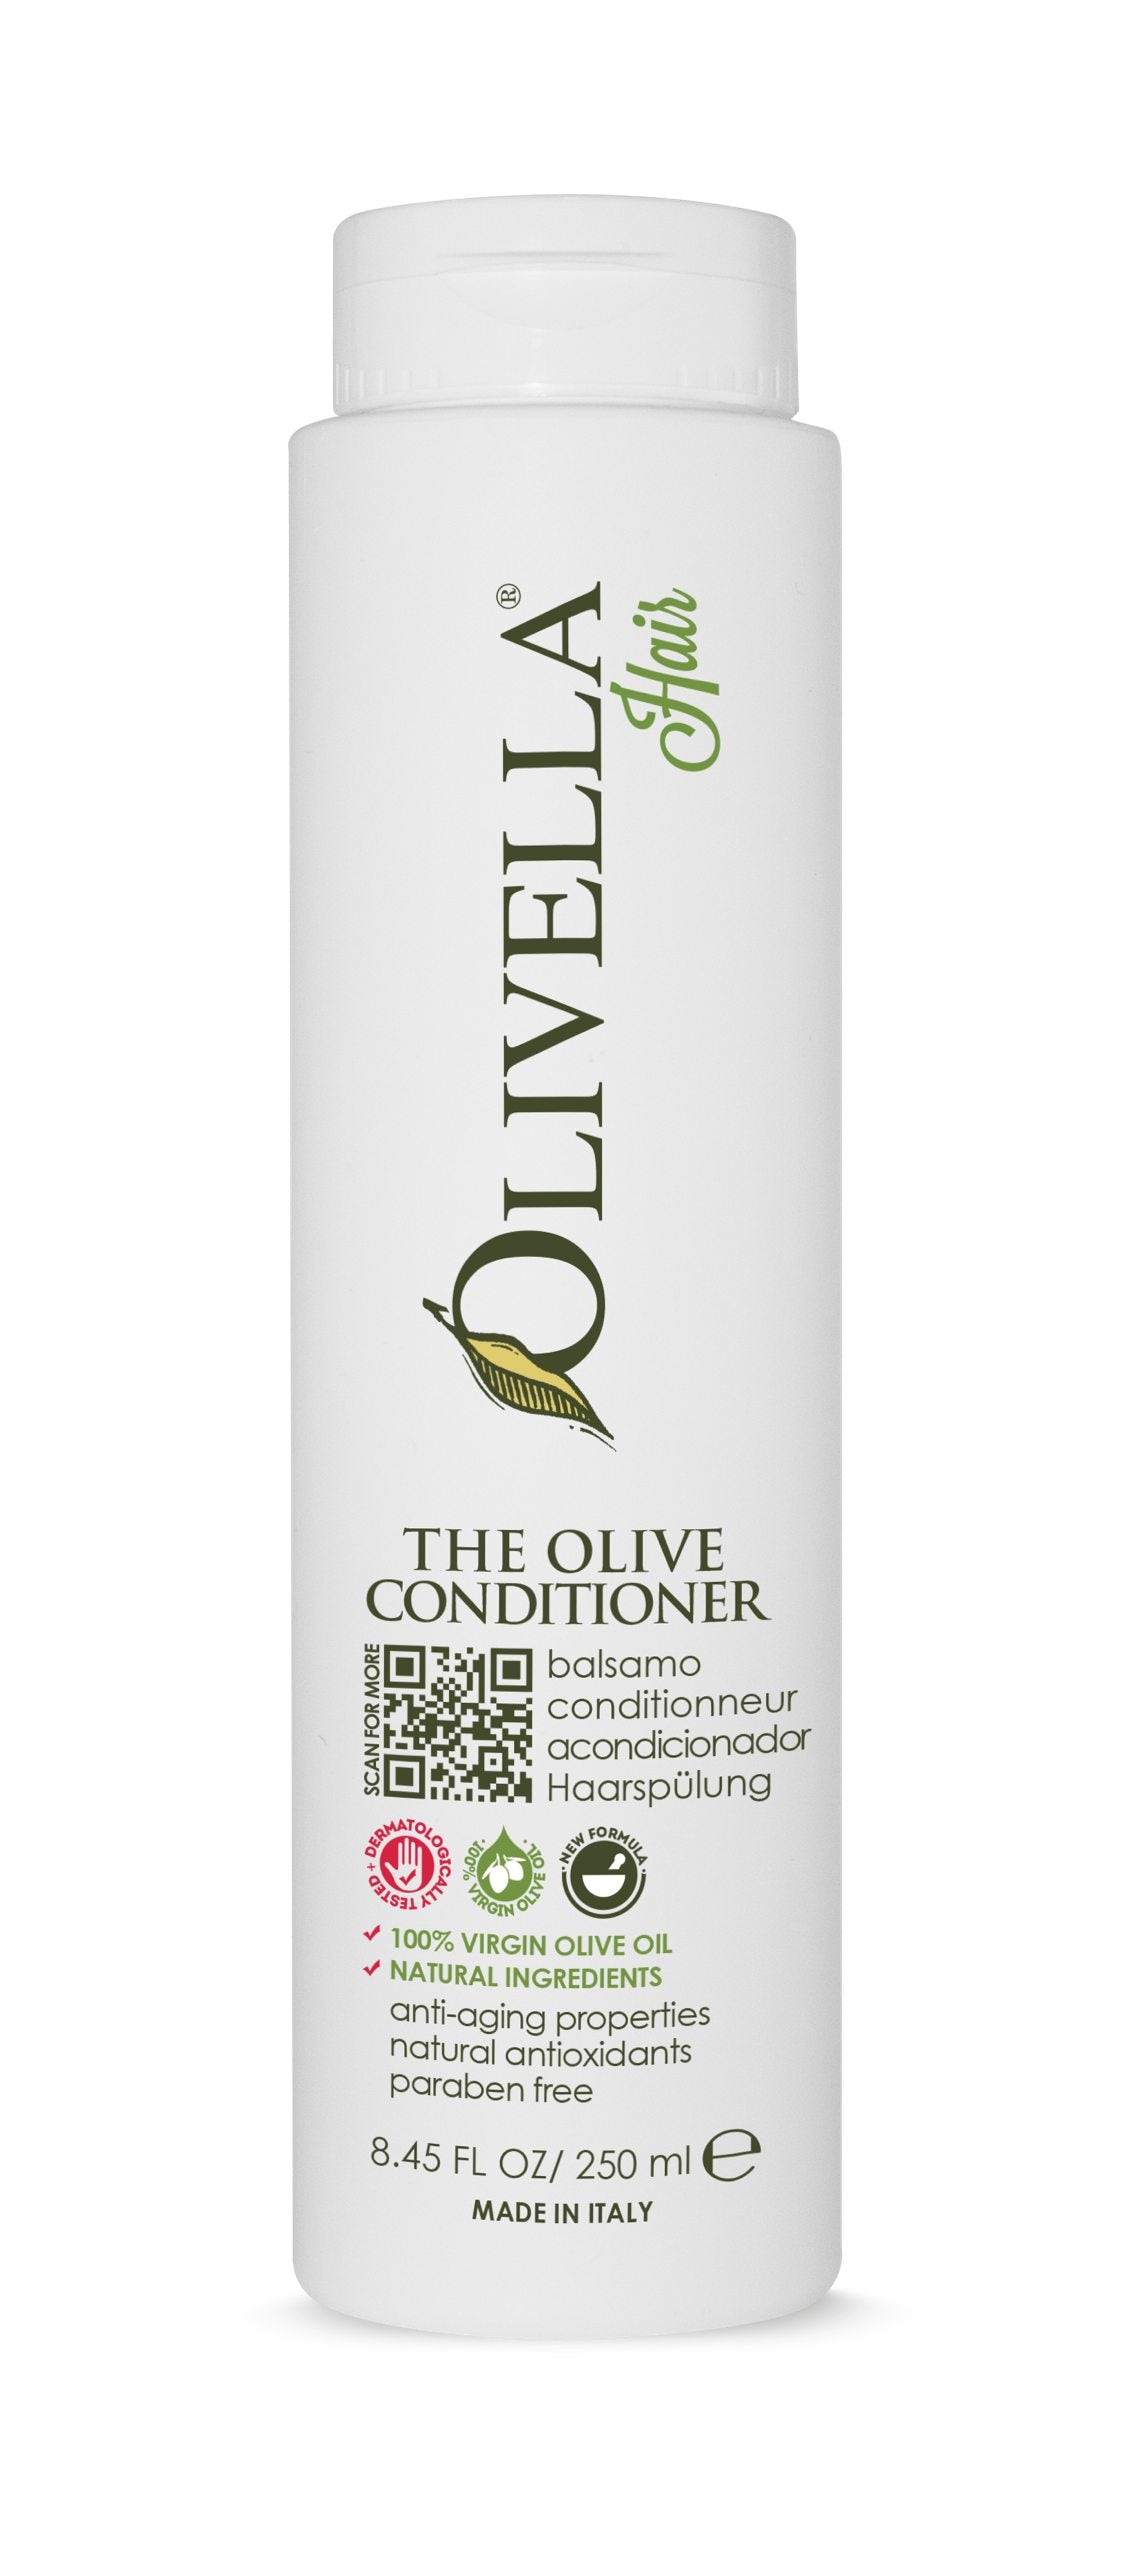 Olivella The Olive Conditioner 8.45 Oz - Olivella